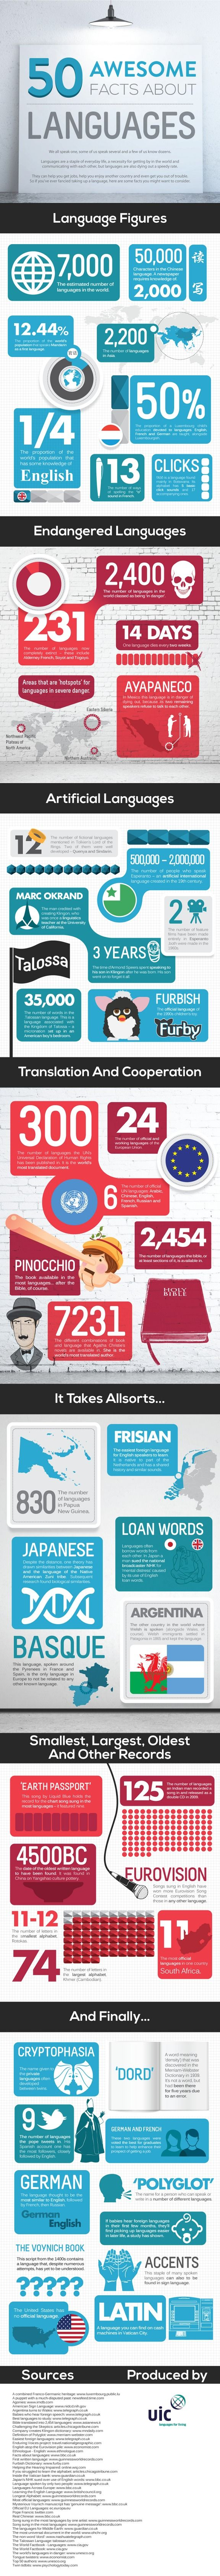 50 awesome facts about LANGUAGES | INFOGRAPHIC